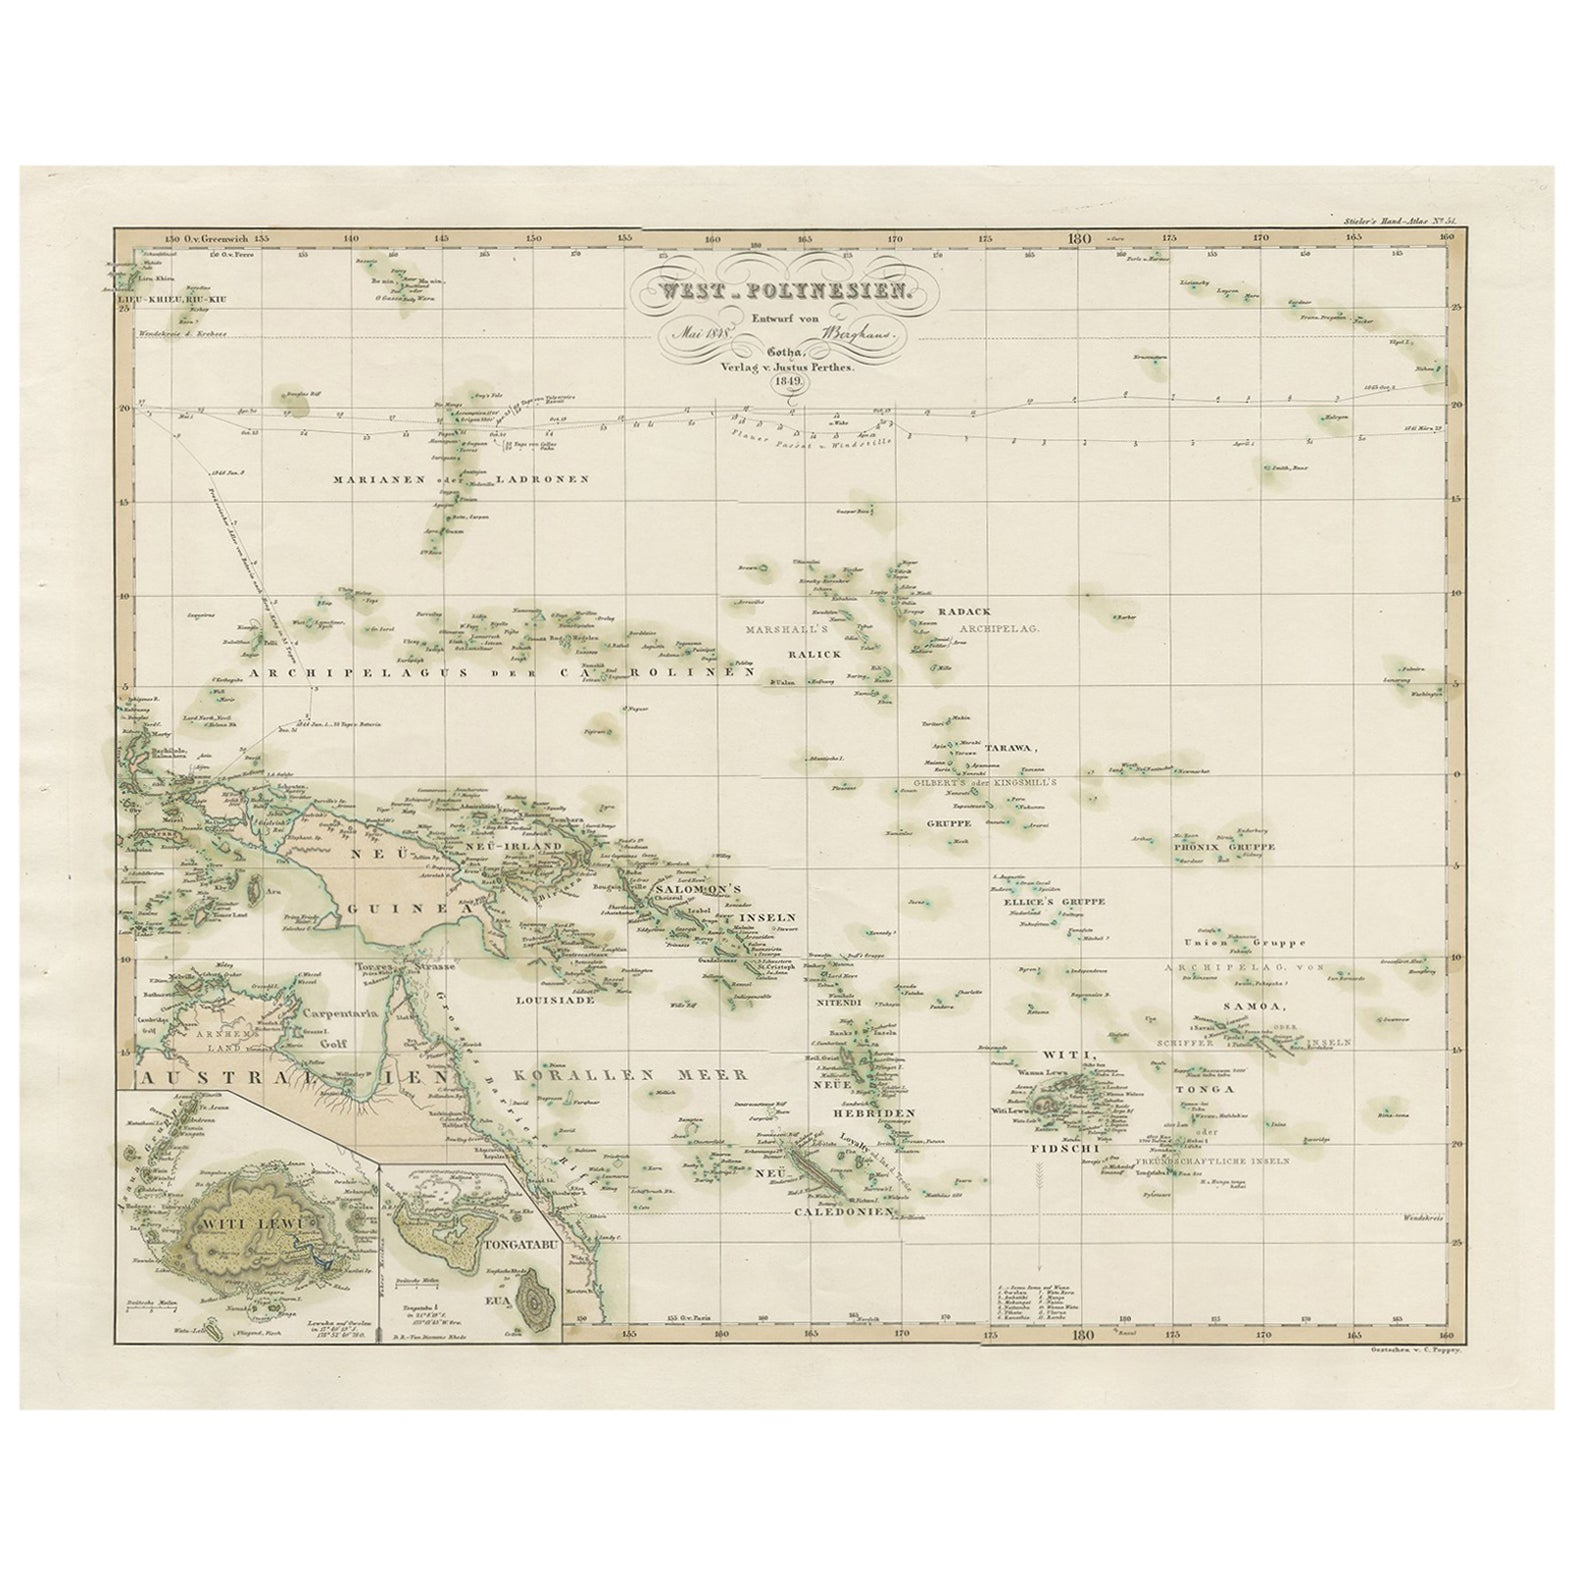 Antique Map of Western Polynesia by H. Berghaus, 1849